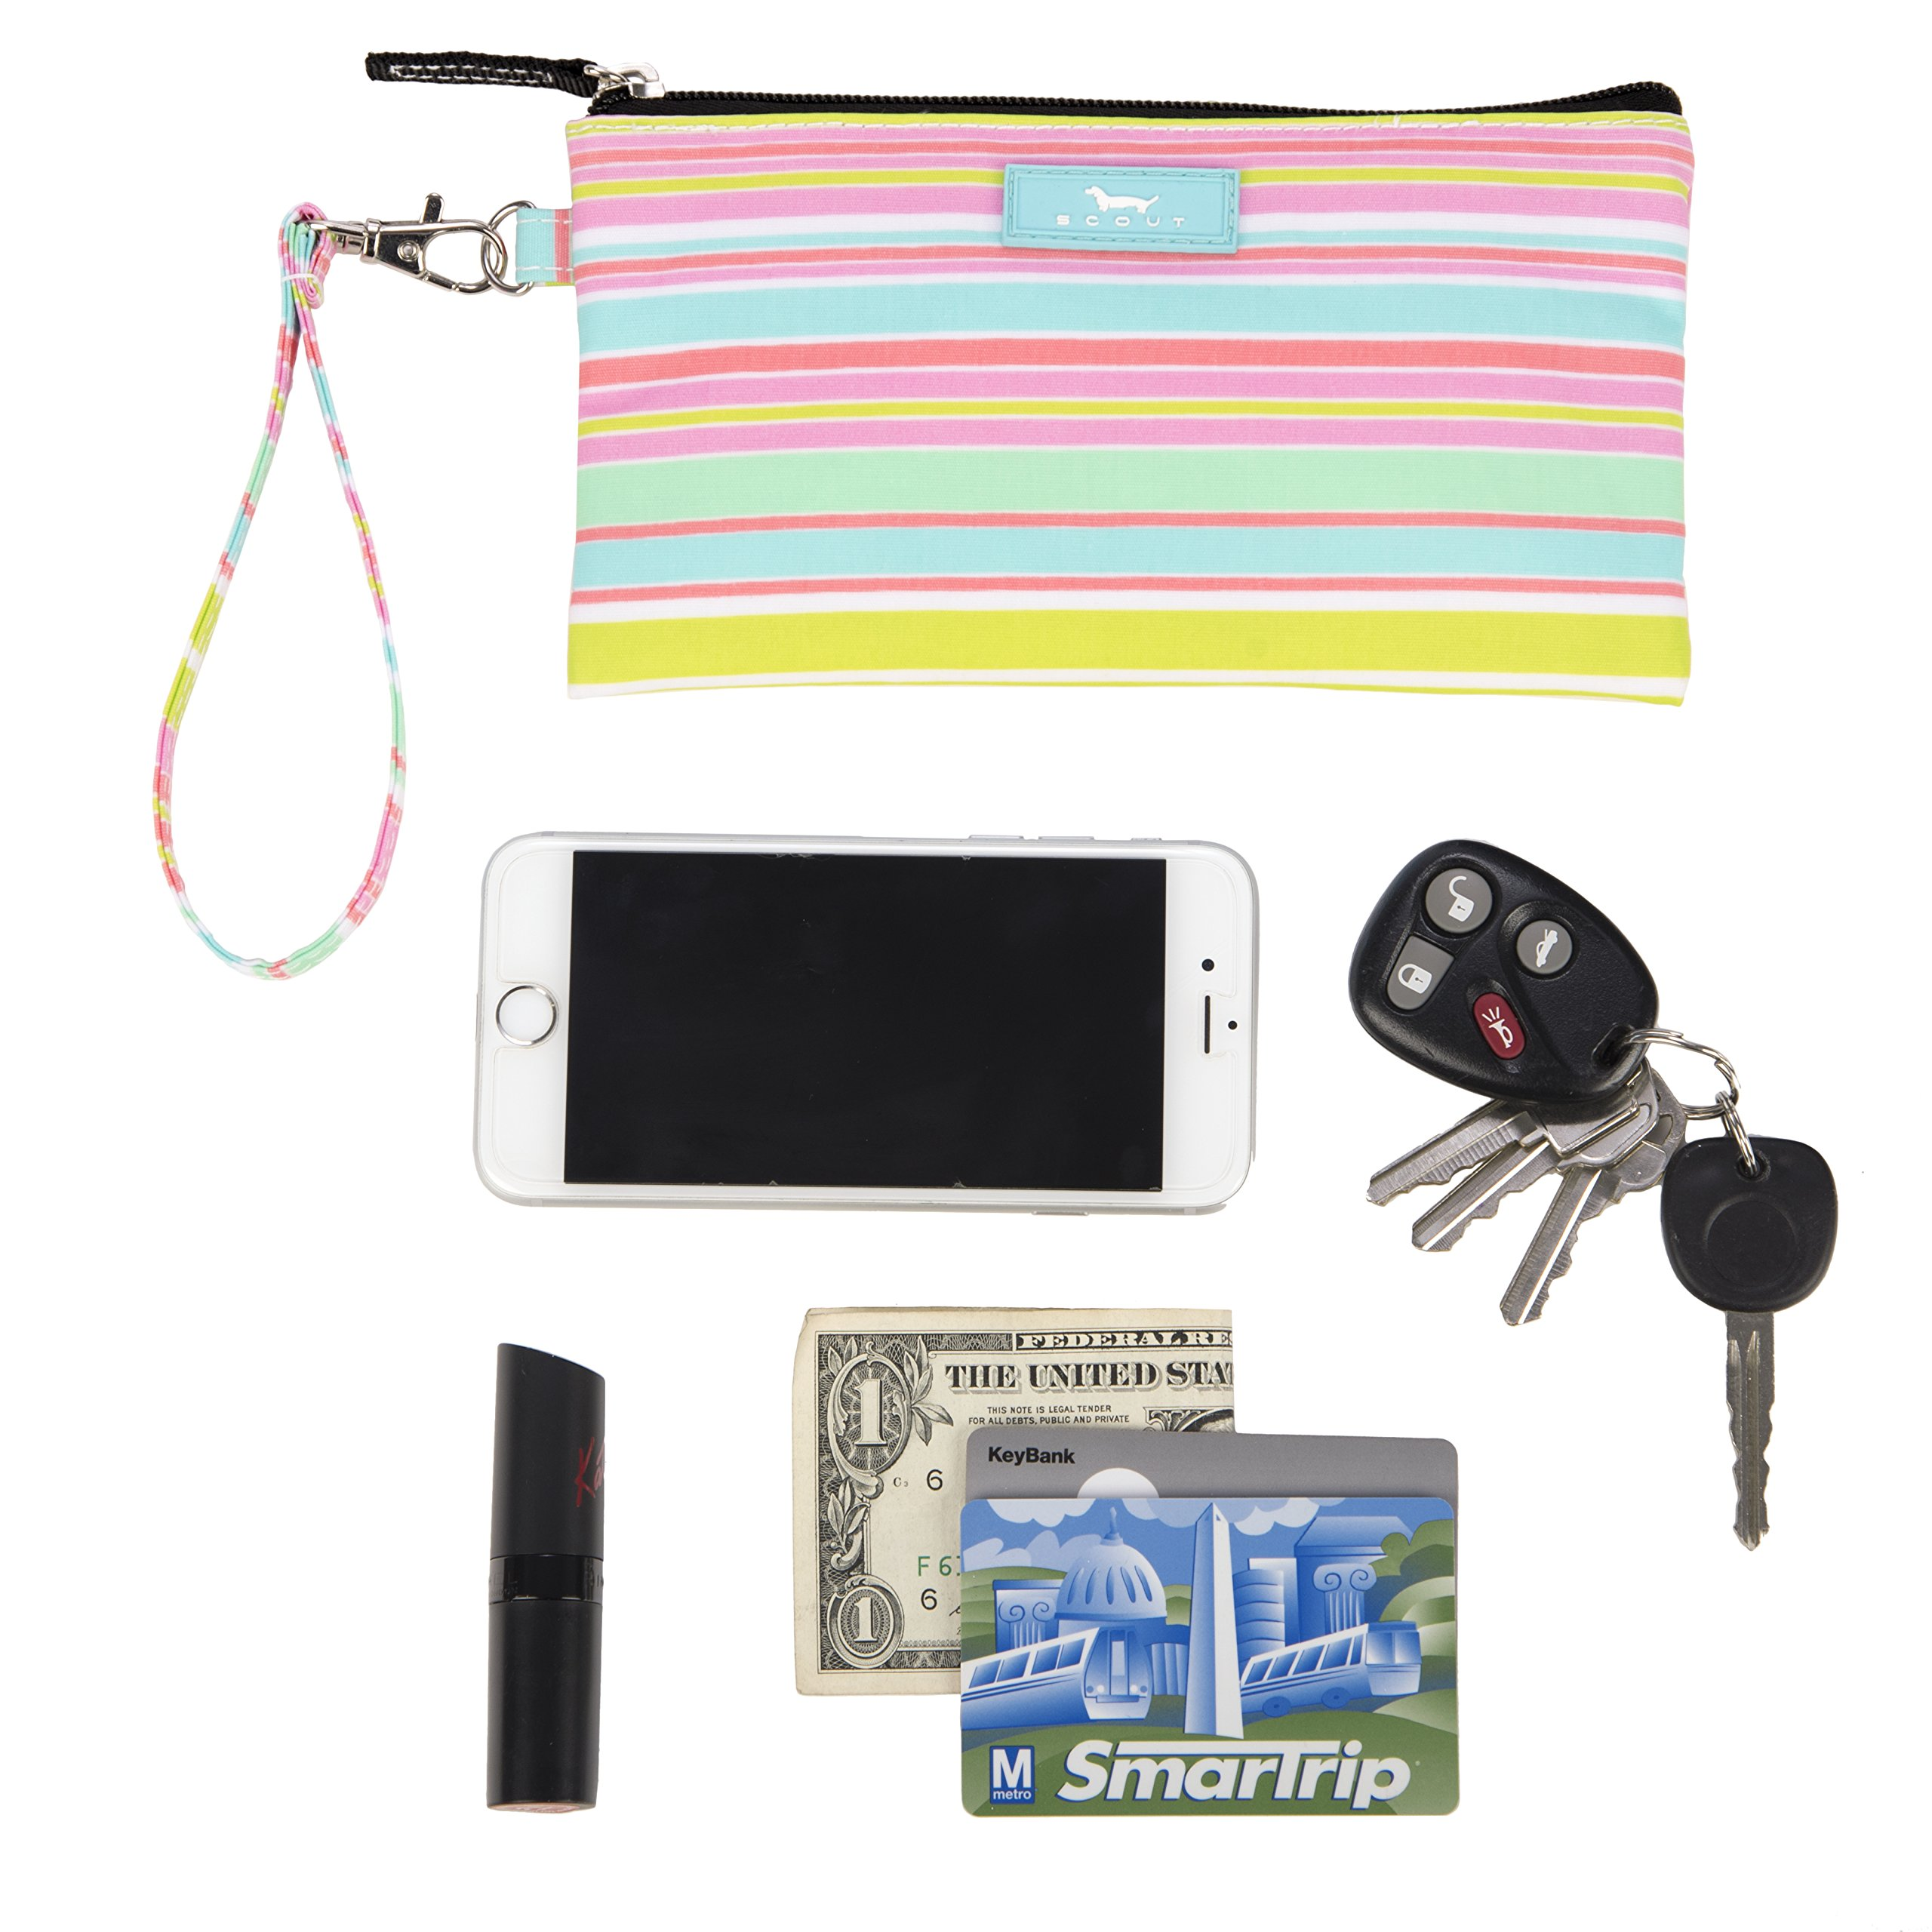 SCOUT Kate Wristlet, Essential Lightweight Clutch, Fits iPhone 6-8, Removable Strap, Water Resistant, Zips Closed, Sol Surfer by SCOUT (Image #3)